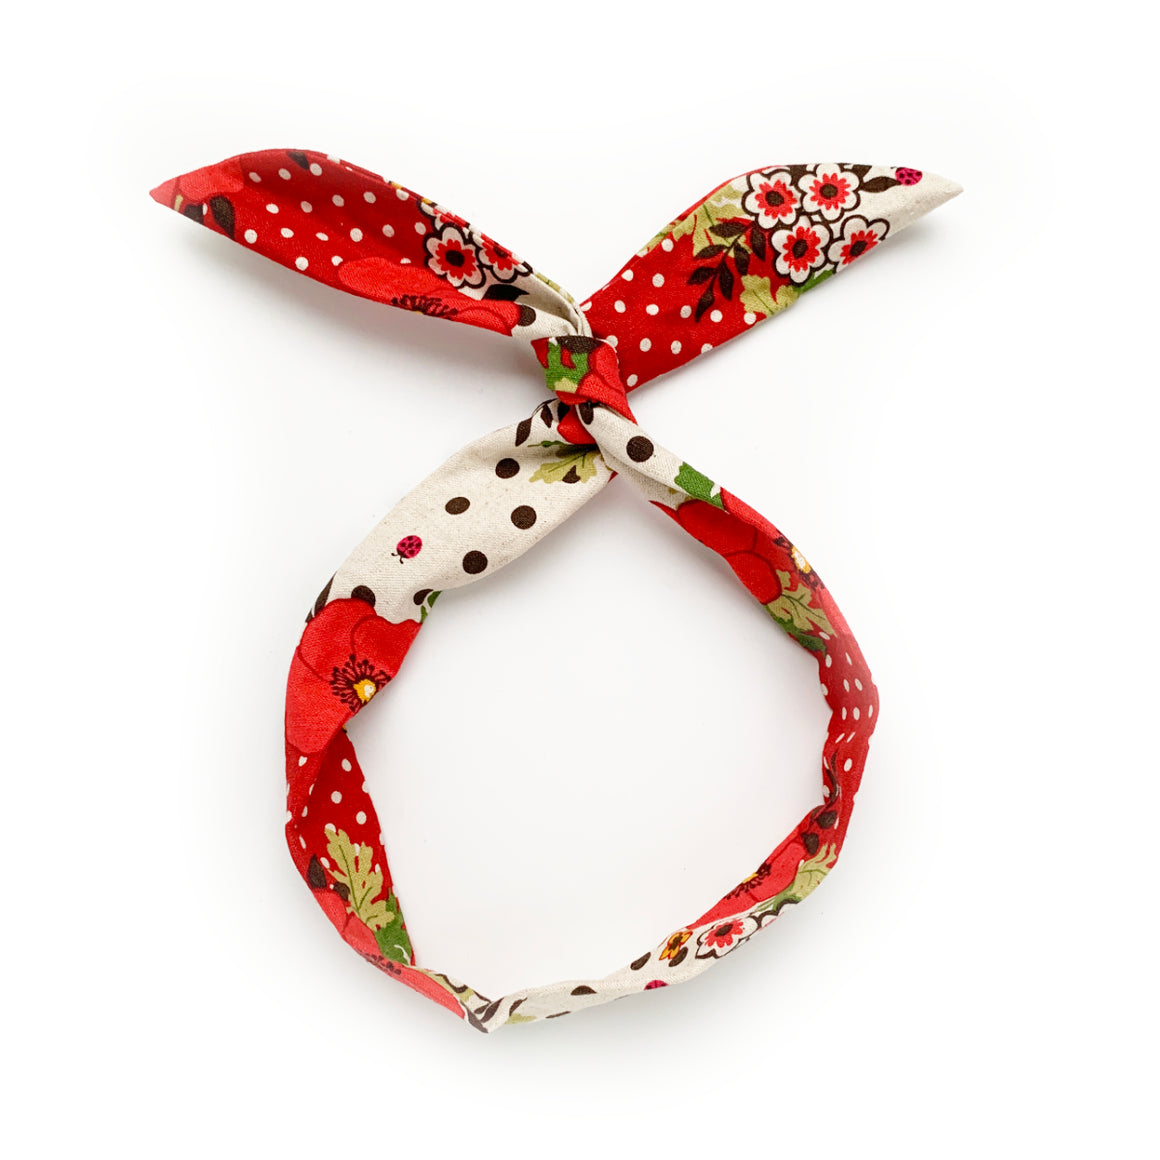 red poppy twist tie // hello shiso hair accessories for girls